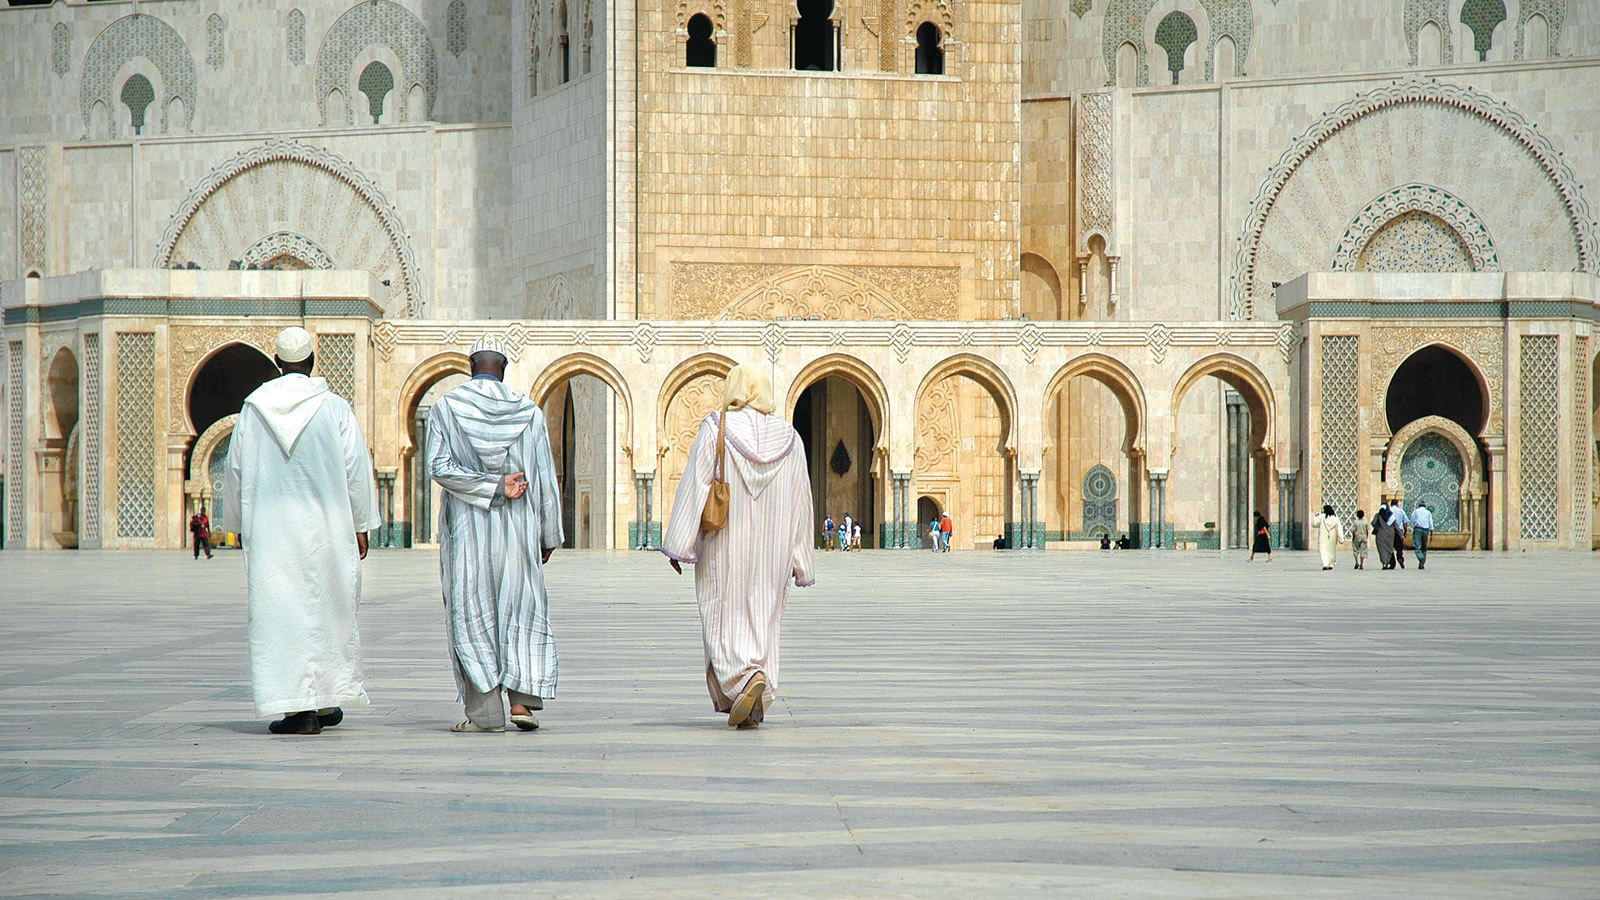 White/Tan Mosque Courtyard with People Walking